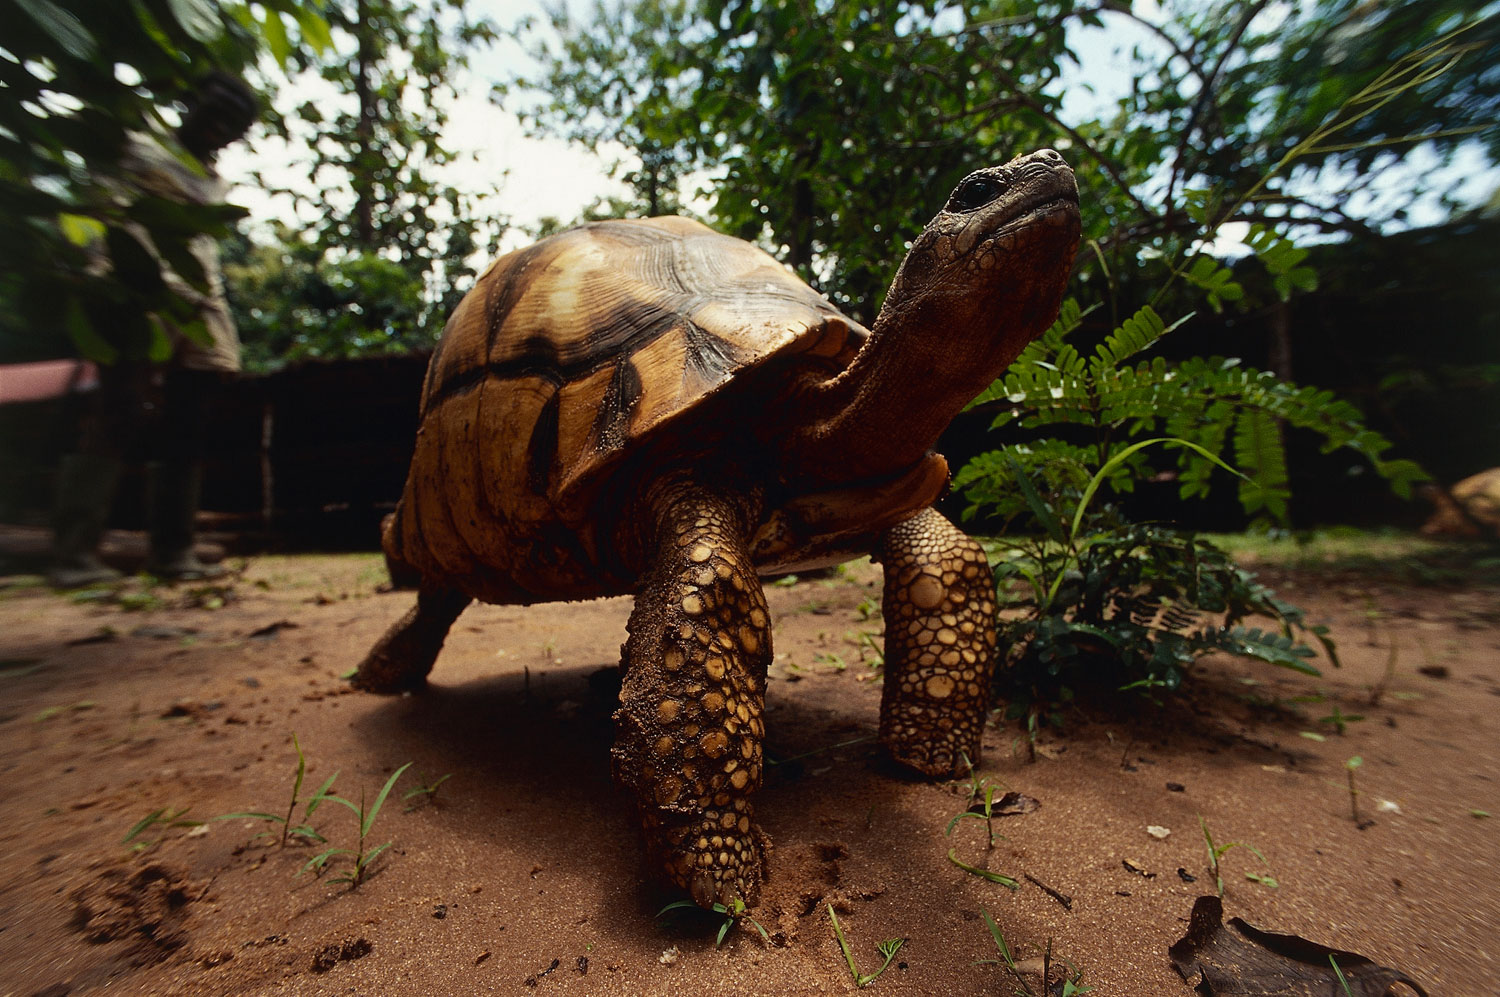 The Plowshare Angonoka tortoise is found in the forests of Madagascar, where it is under heavy pressure from habitat destruction.